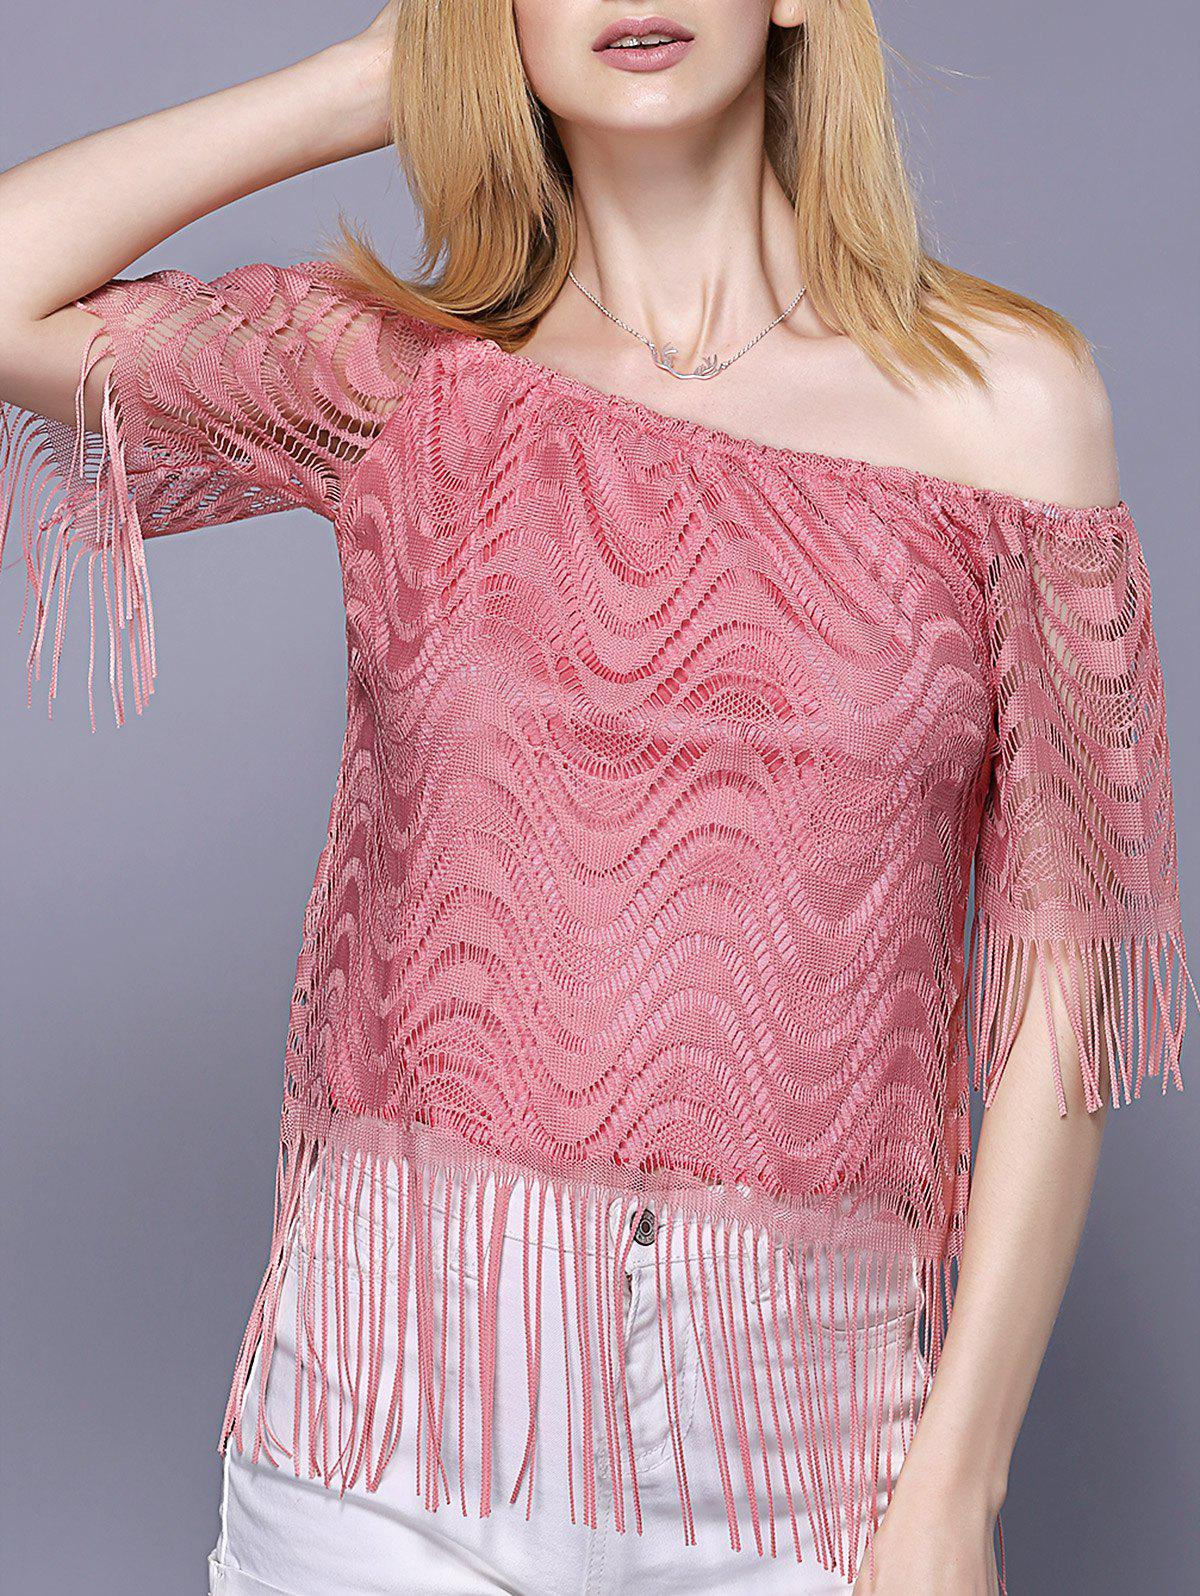 Off The Shoulder Tassel Embellished Women's Top - PINK S